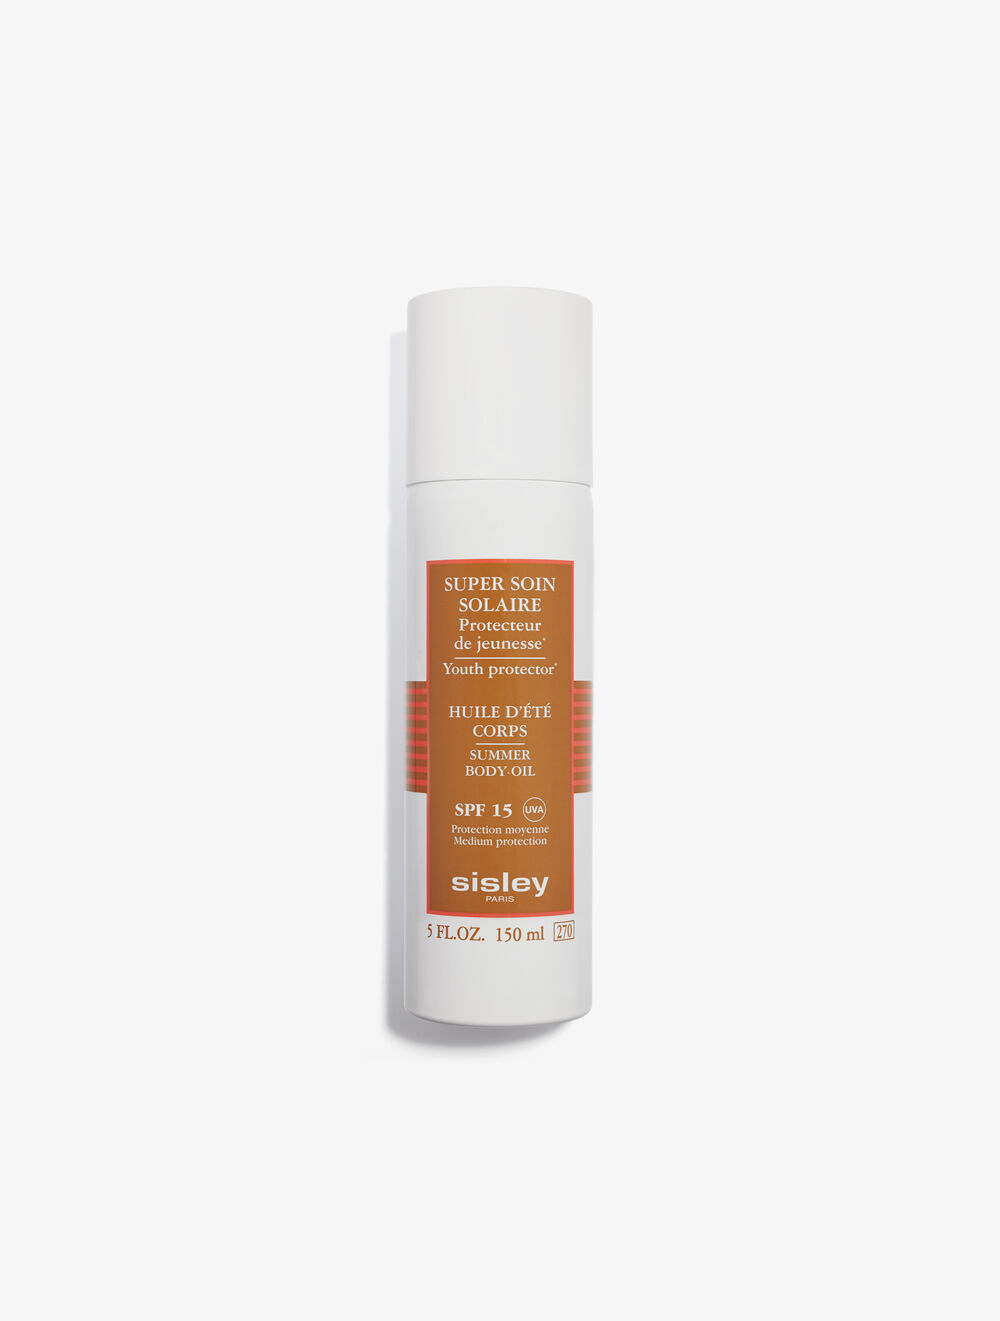 Super Soin Solaire Huile Soyeuse Corps SPF15